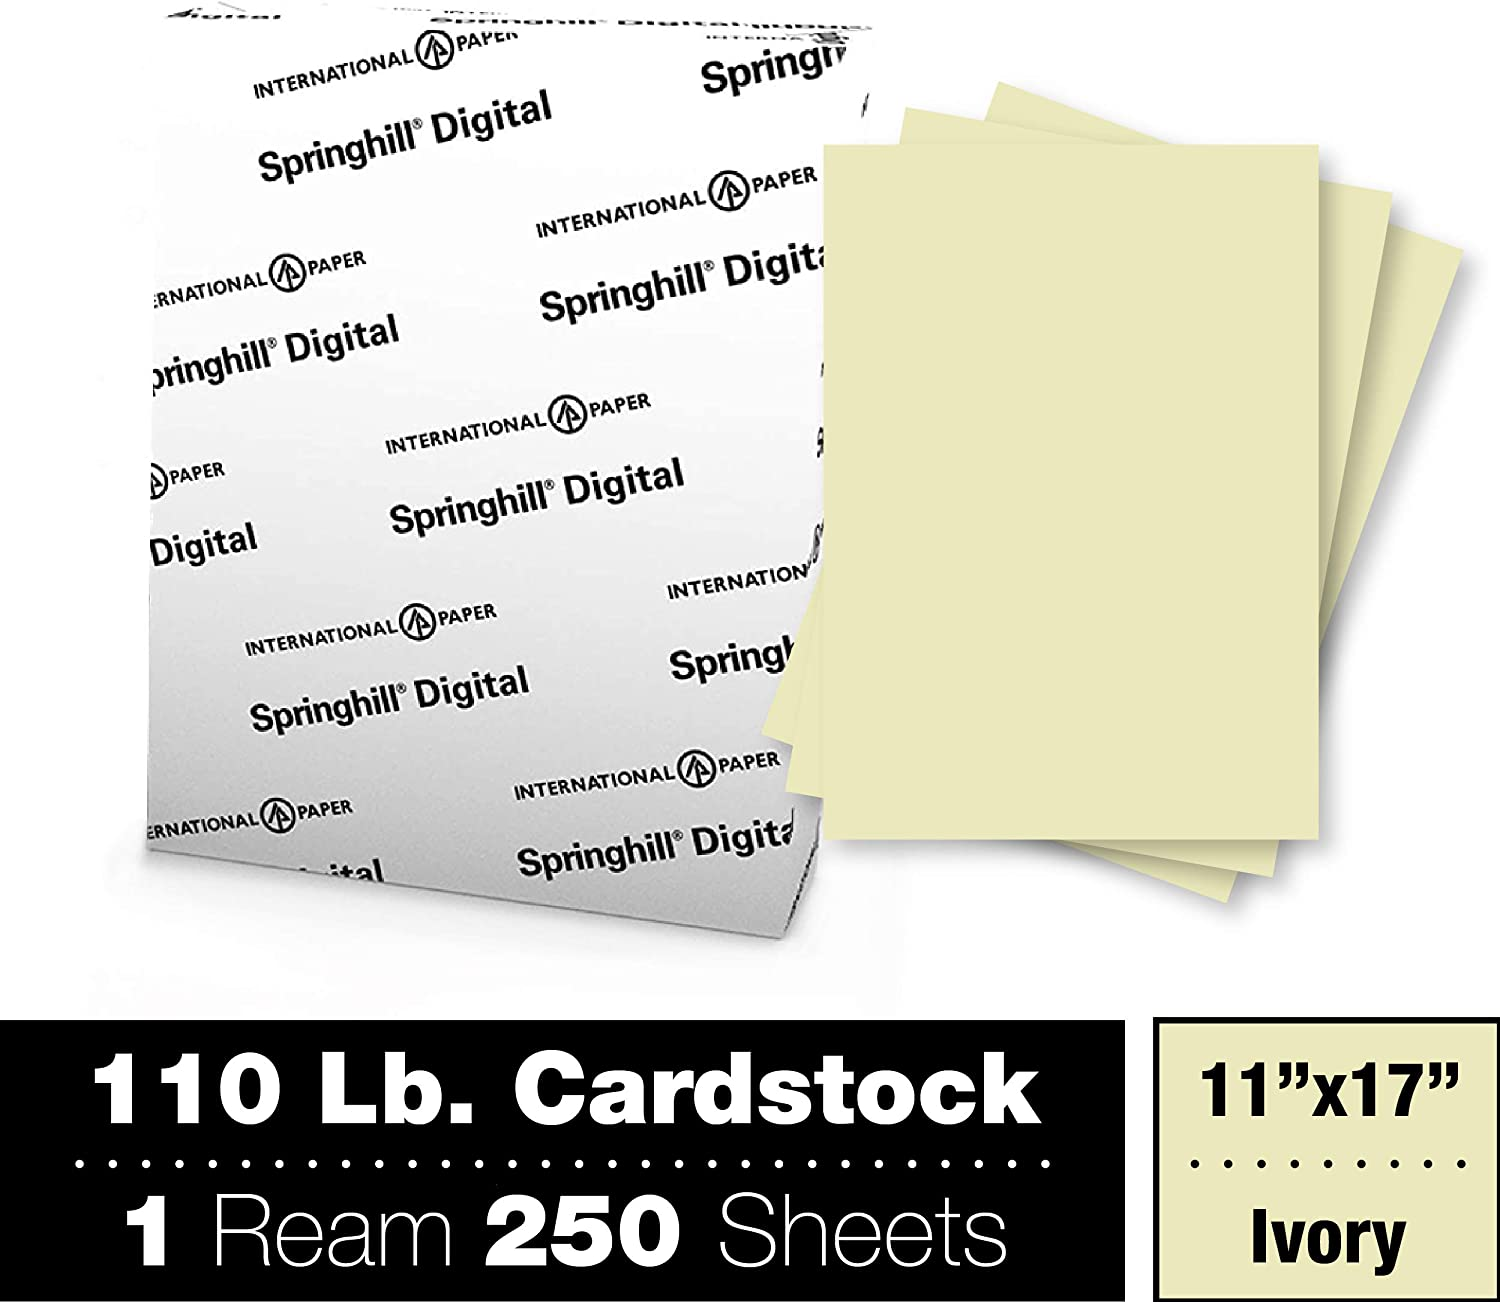 11 x 17 Springhill Digital Index White Card Stock SGH015110 250 Sheets//Pack